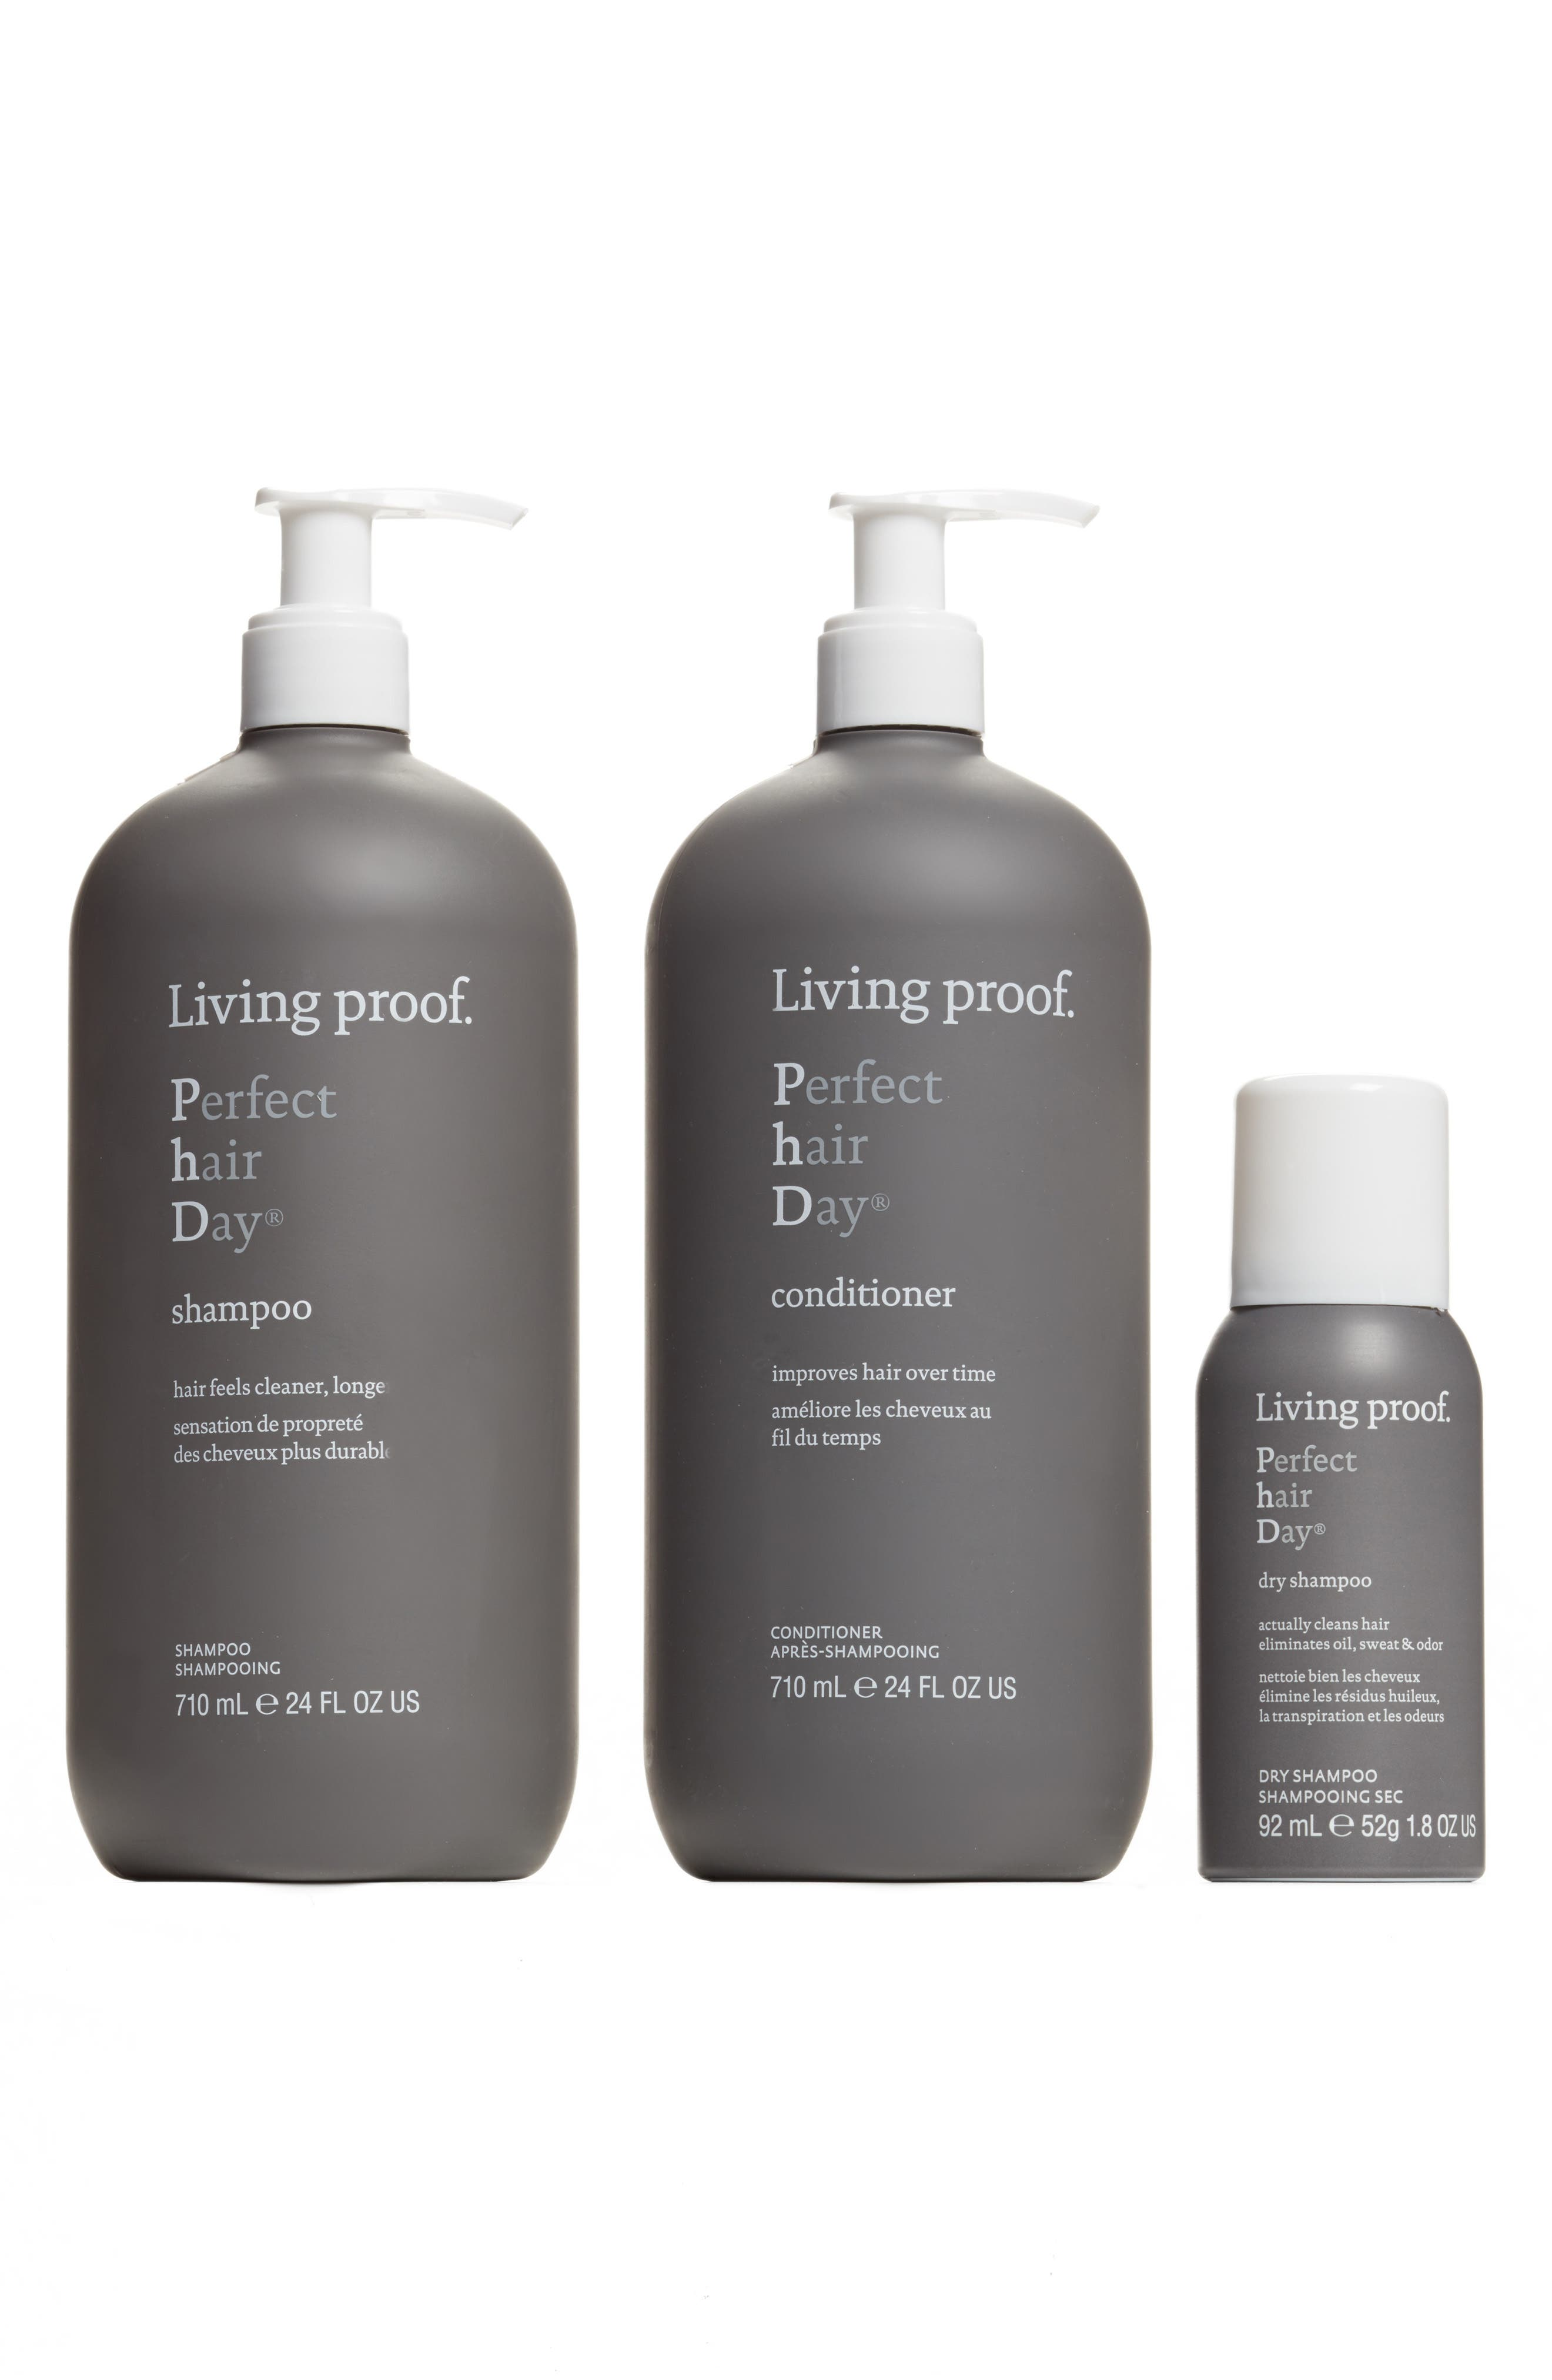 Alternate Image 1 Selected - Living proof® Perfect hair Day™ Collection ($130 Value)